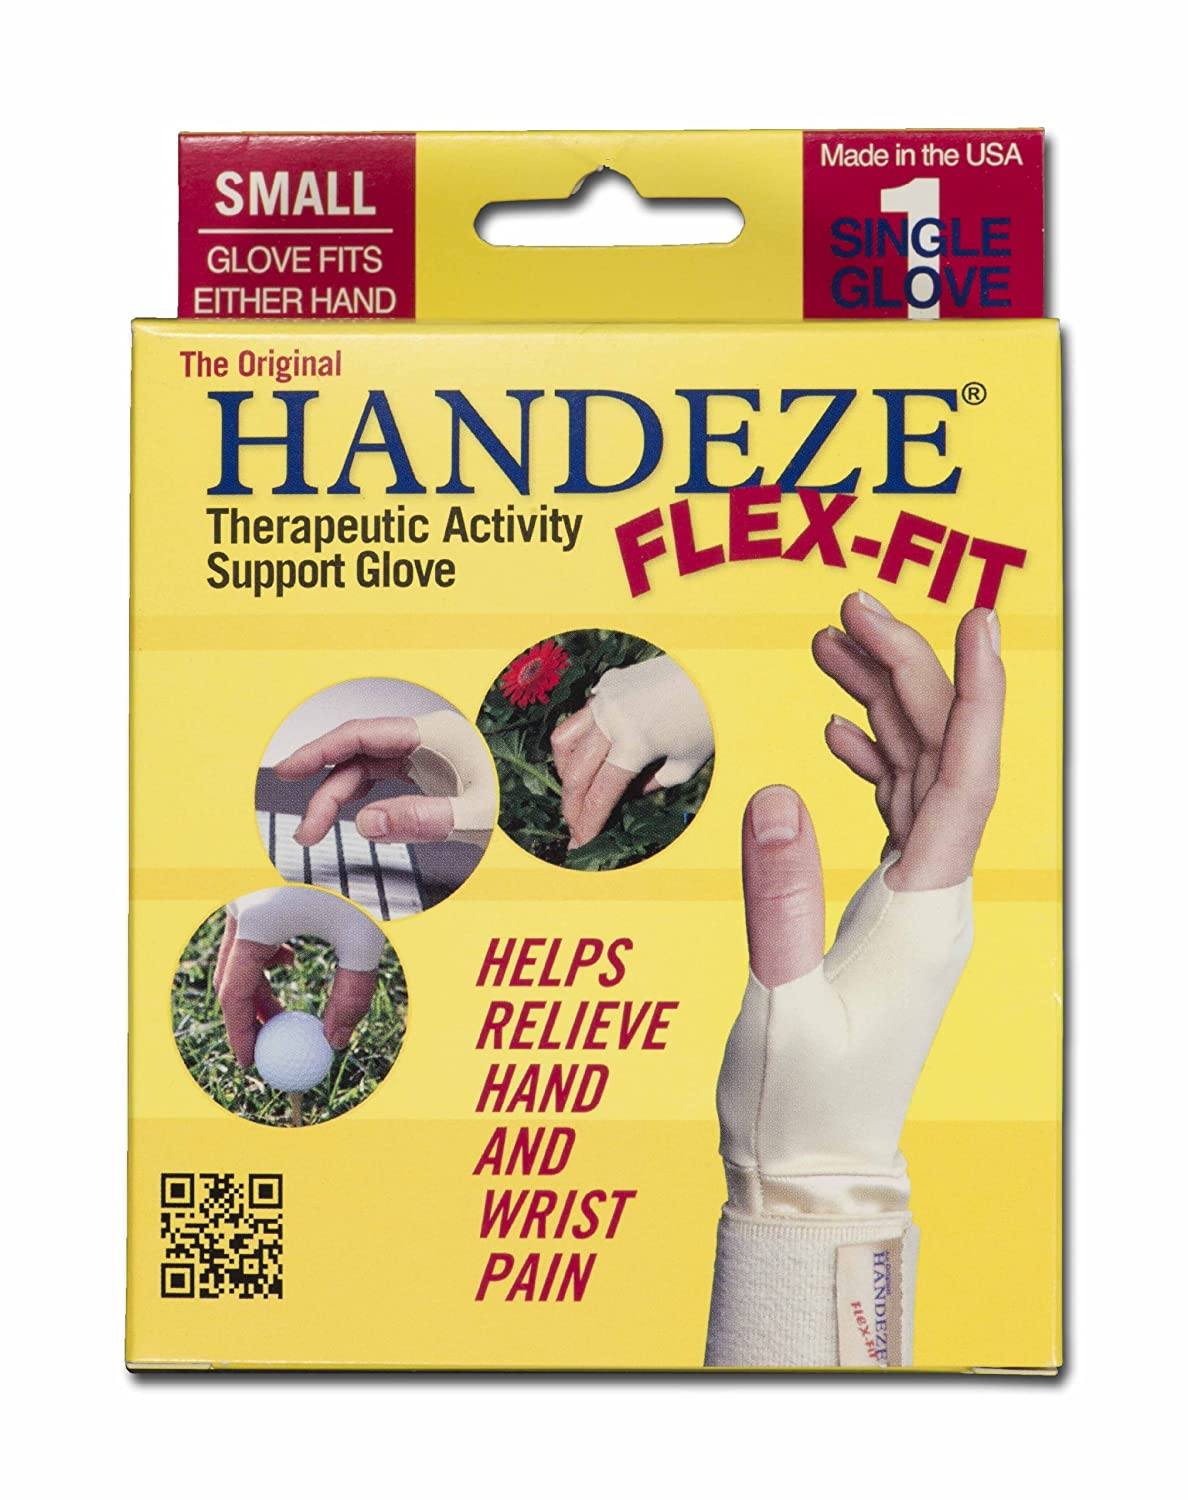 DOME Handeze Therapeutic Gloves, Flex-Fit, Small, Size 3 small. 13533